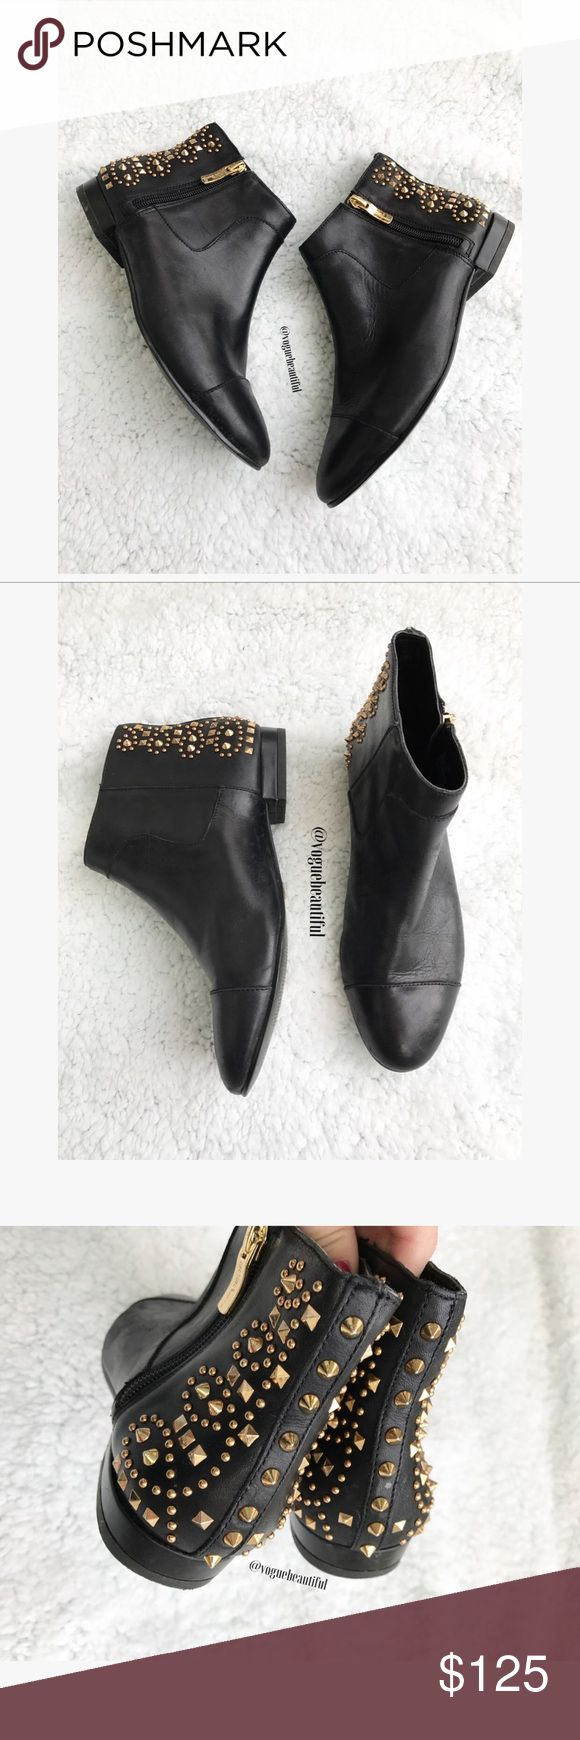 BCBGeneration Leather Logann Studded Booties Absolutely in love with these 😍 • Genuine leather BCBGeneration studded booties • Size 6 M • Good preloved condition with no major wear • .6 inch heel • ‼️NO TRADES‼️ BCBGeneration Shoes Ankle Boots & Booties